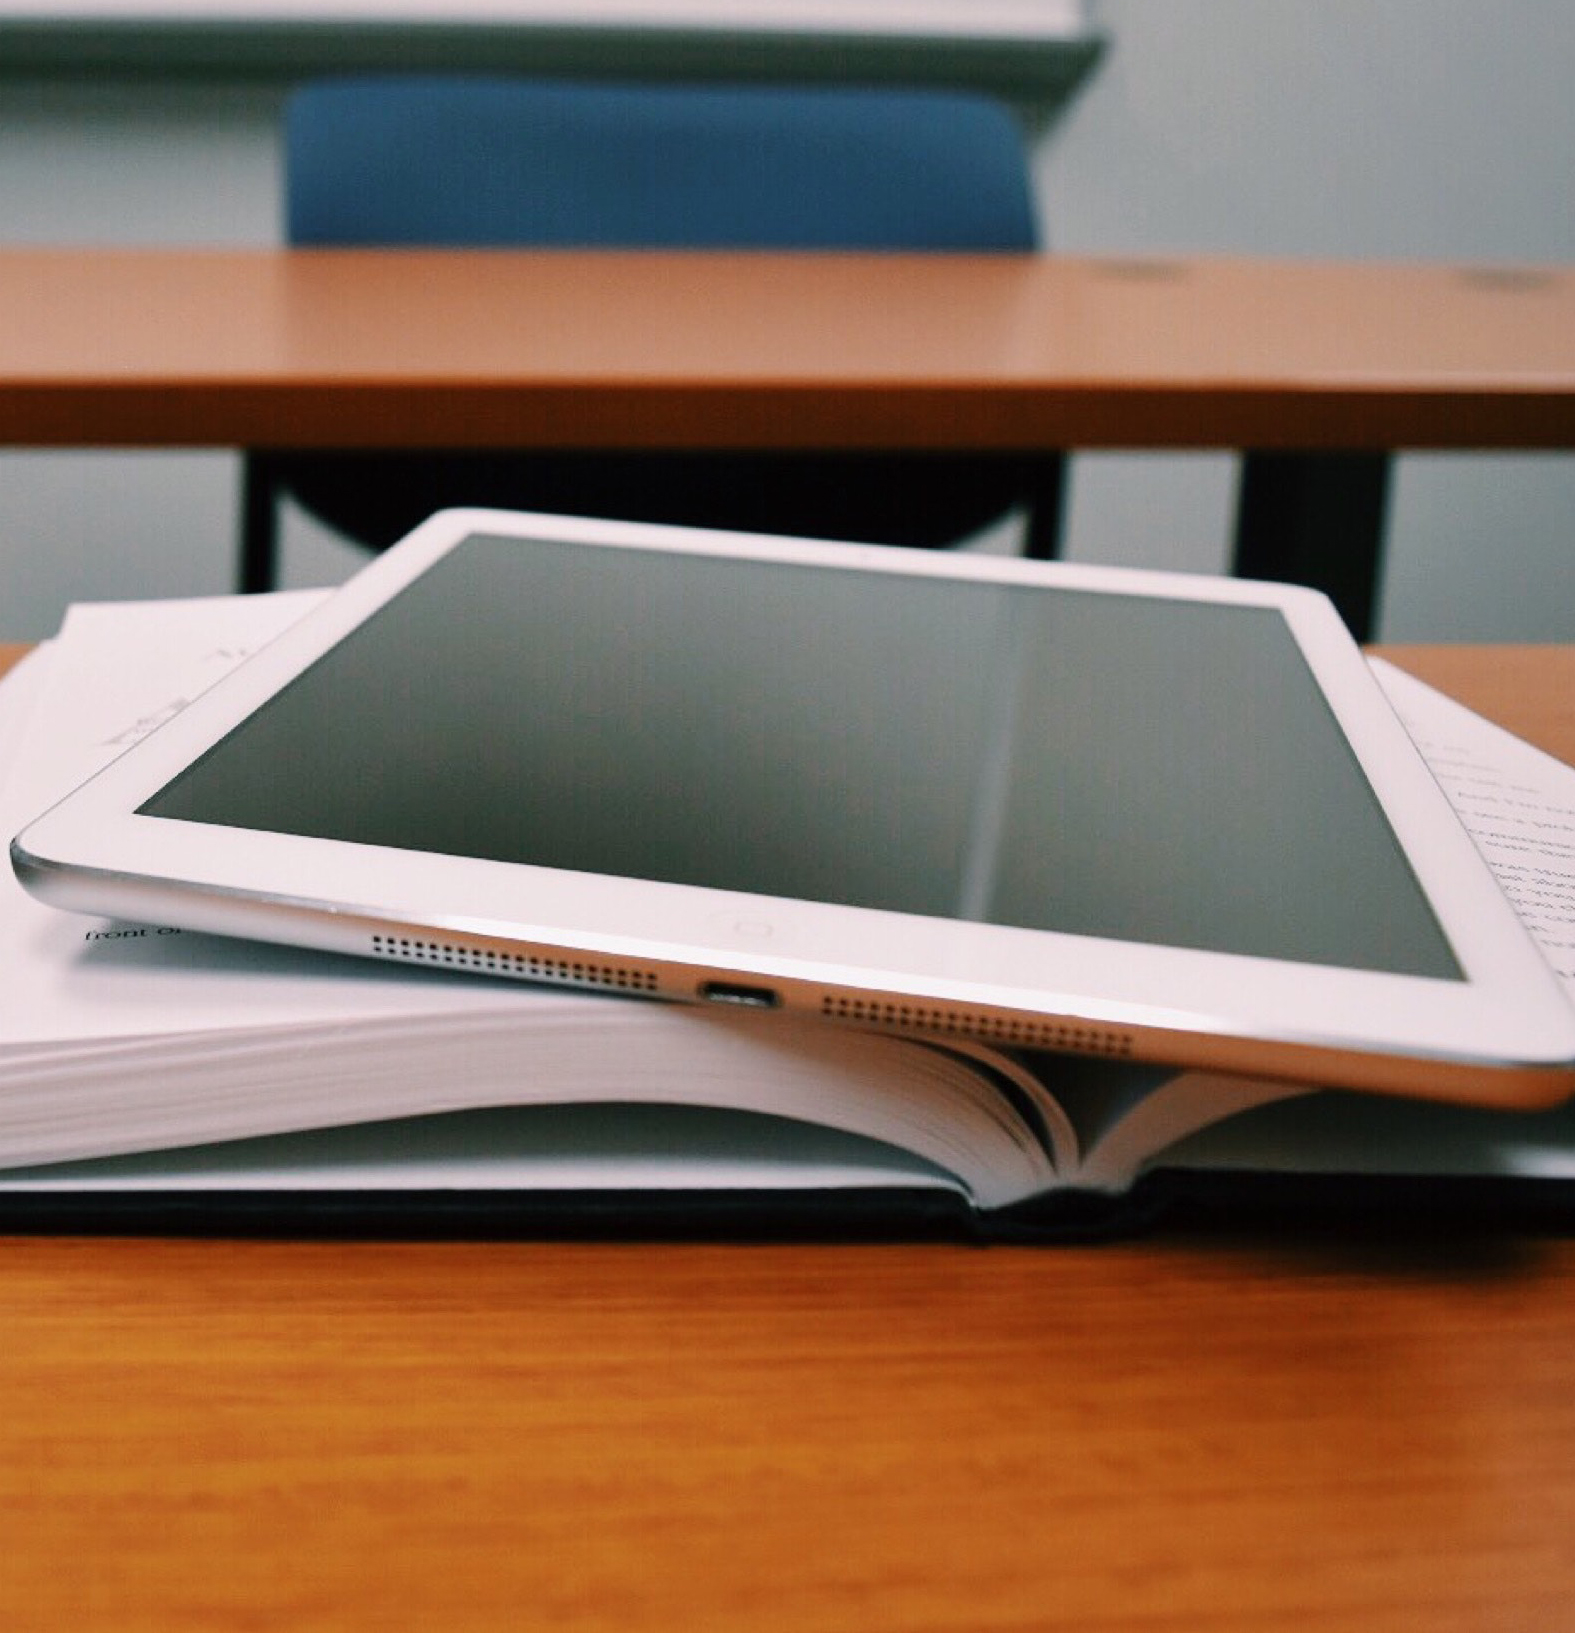 tablet resting on top of open book